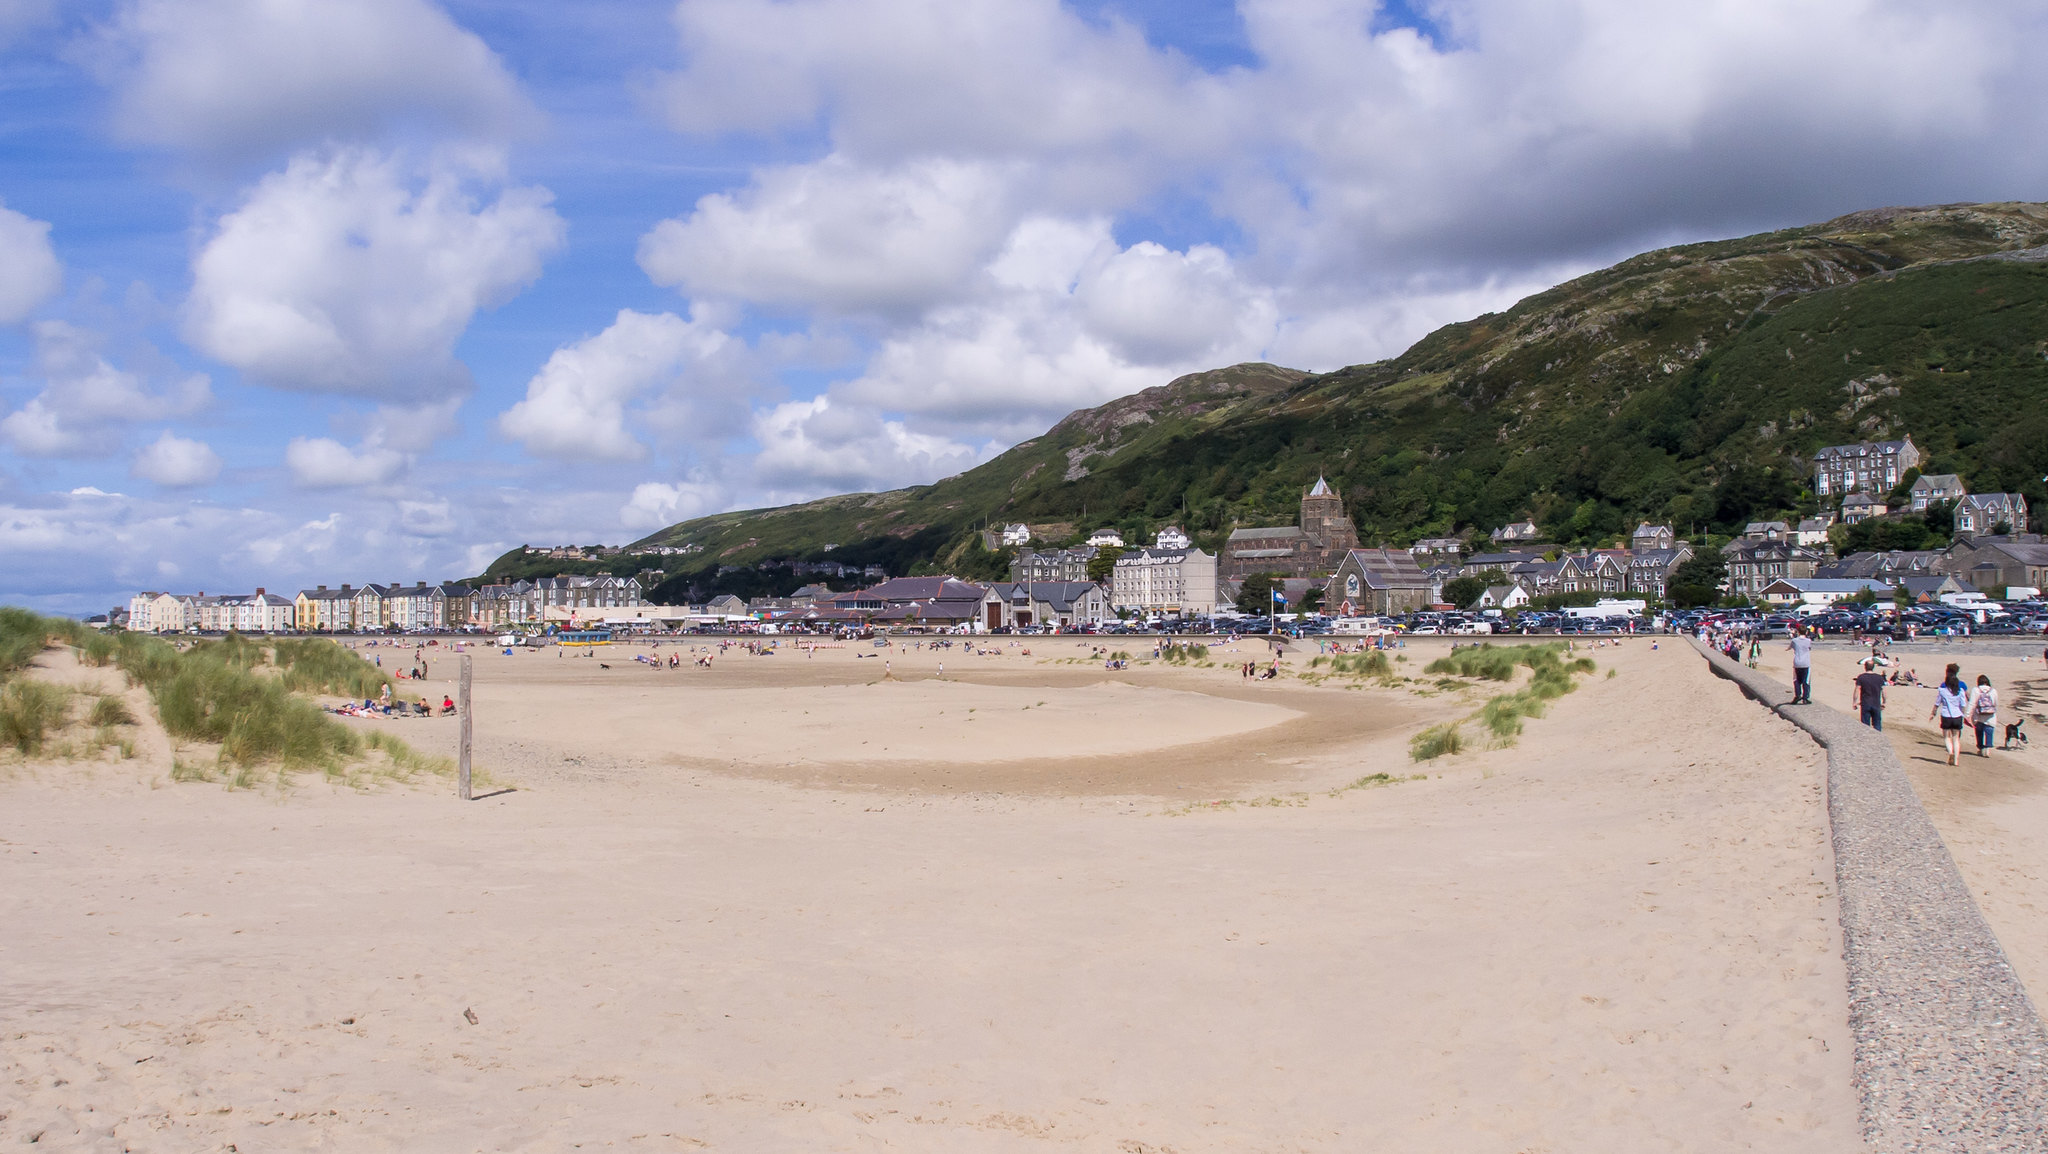 Barmouth town and beach